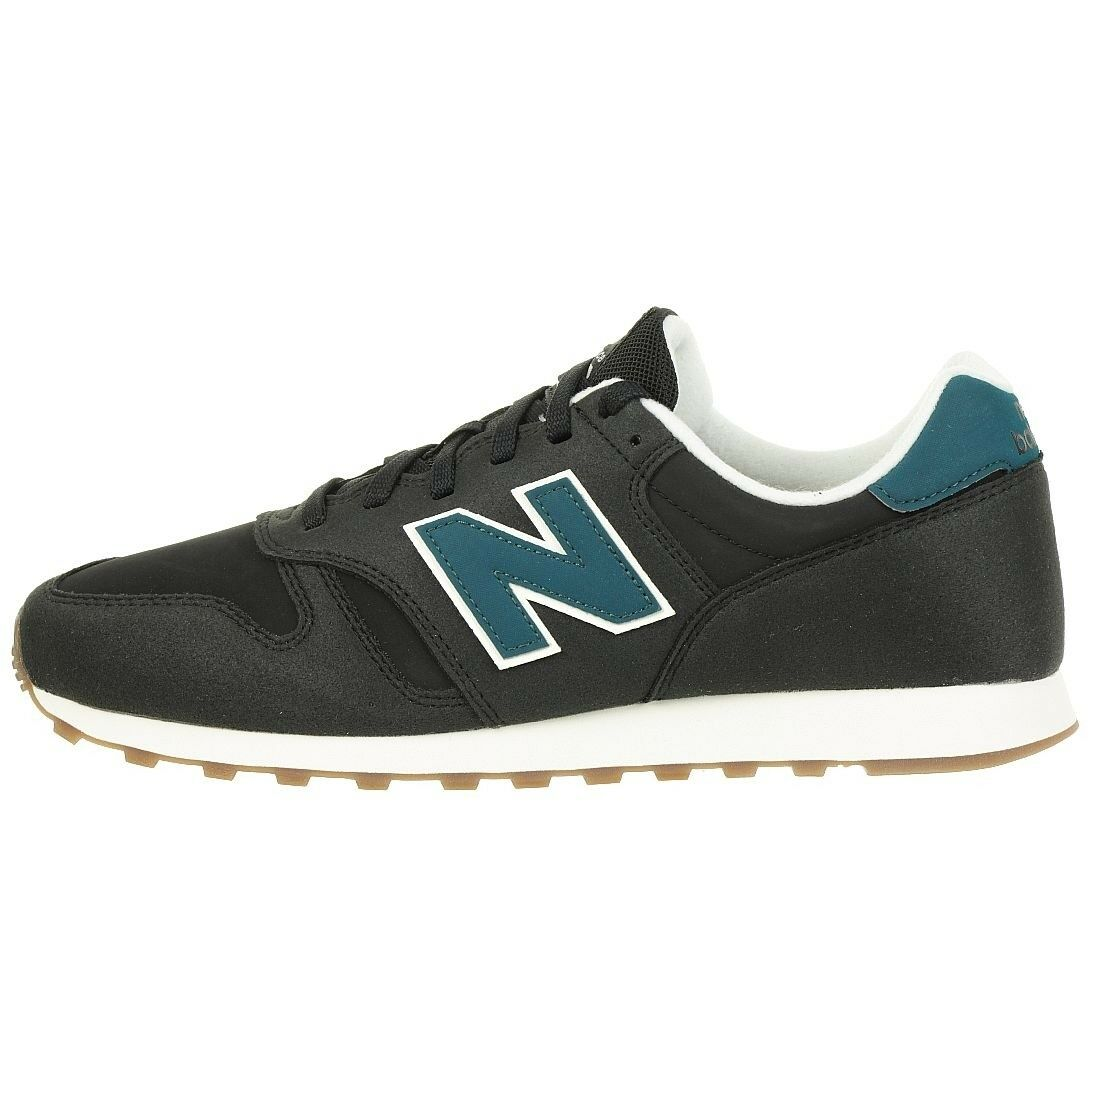 New Balance ML373BYS ML373BYS ML373BYS Classic Sneaker Chaussures Noirs pour Hommes 373 c511a4